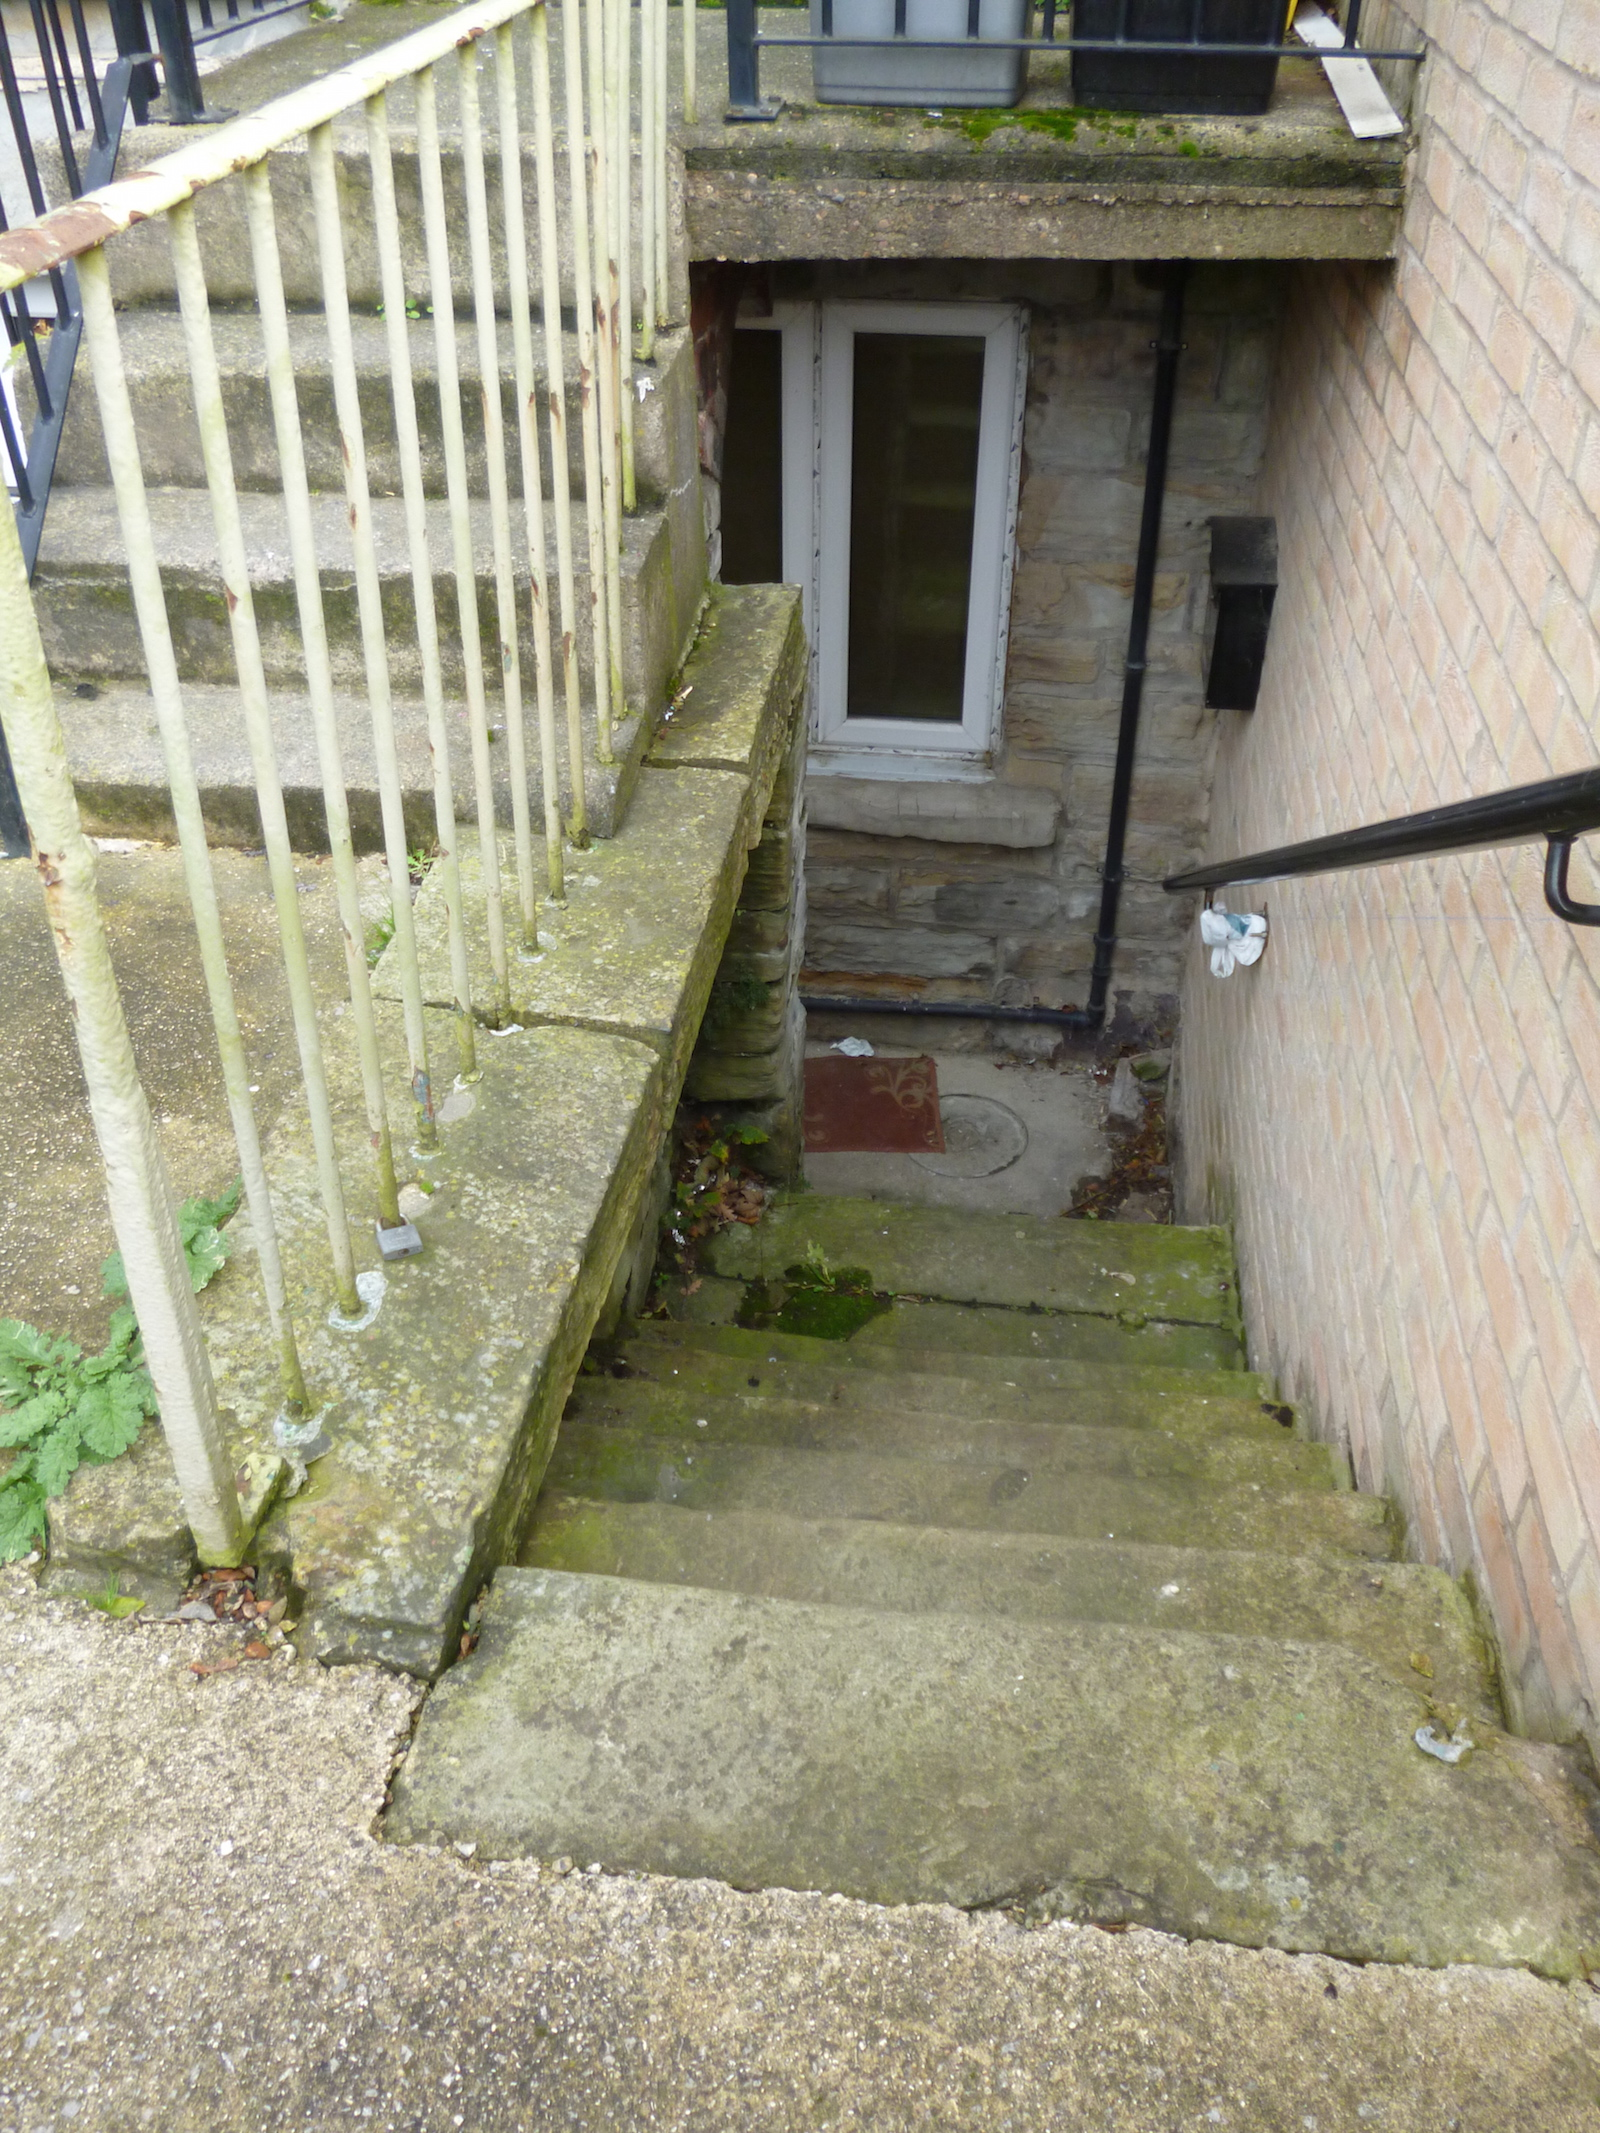 Stairs down to the basement flat © J. Grayson